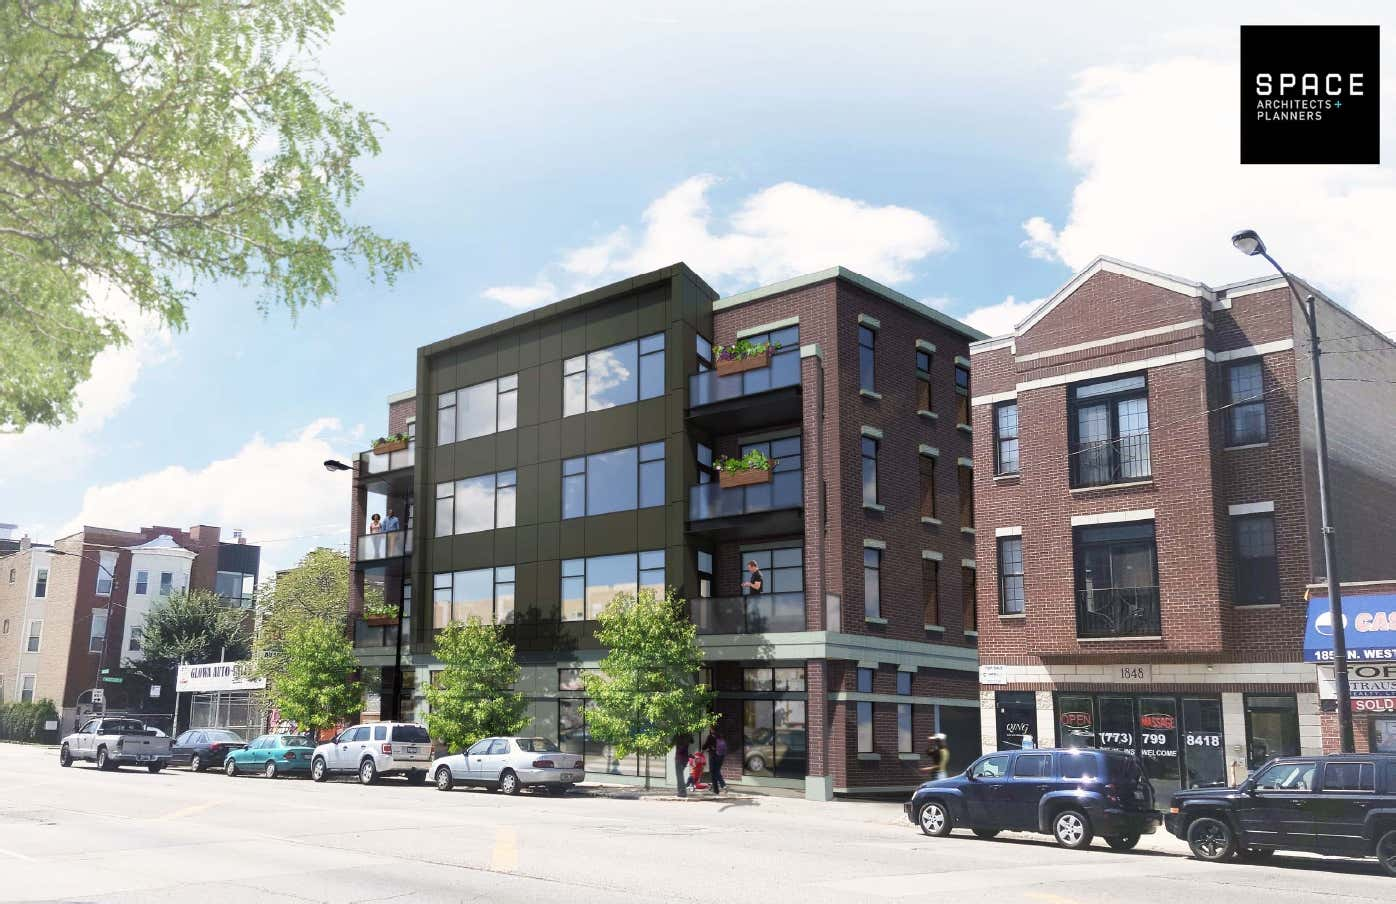 1838 N Western Avenue most recently published design. Rendering by SPACE Architects + Planners